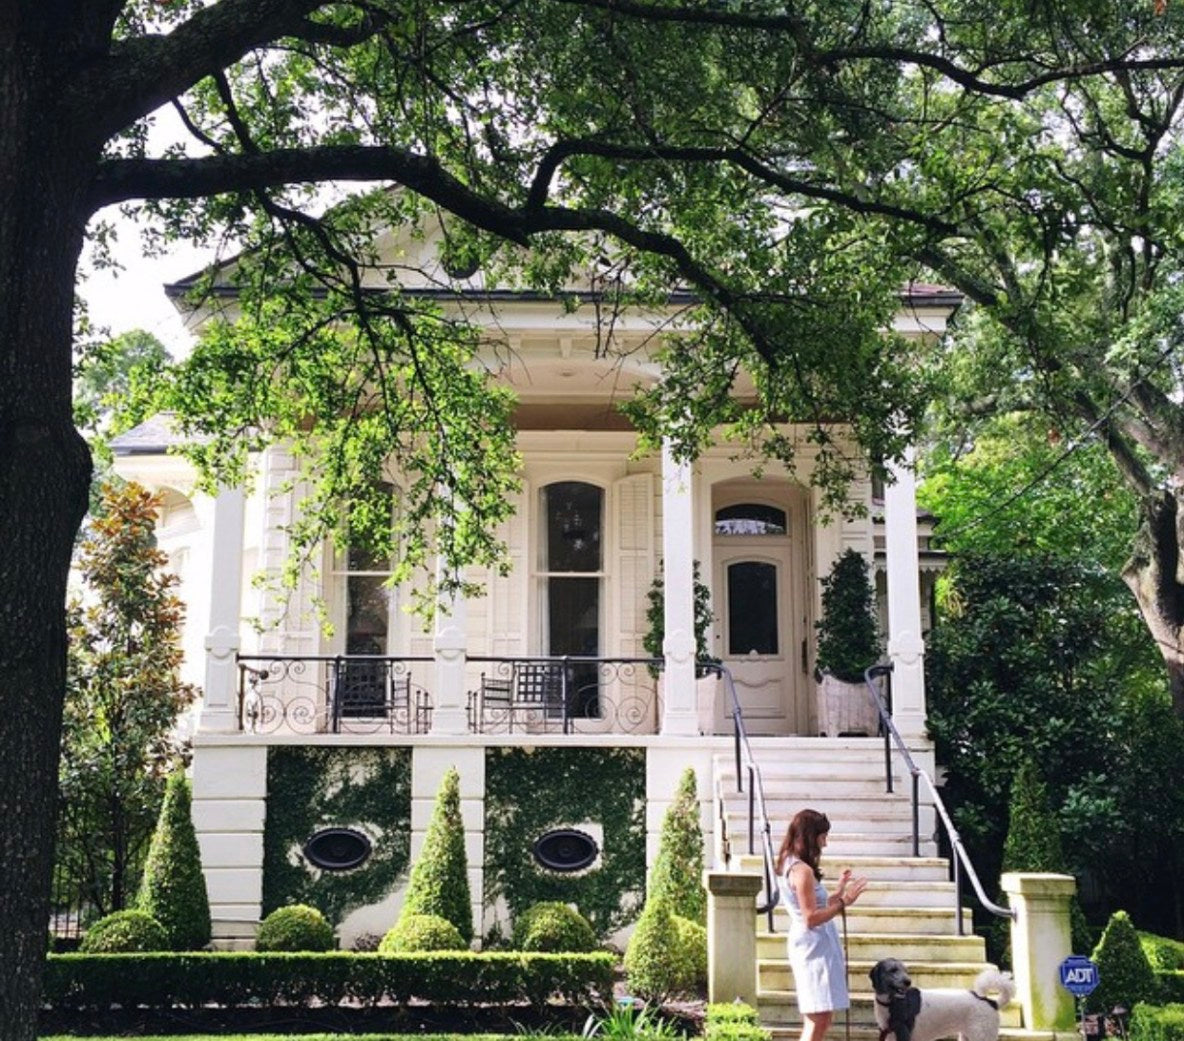 February 2018: Let's Take A Walk Around The Neighborhood: Southern Exteriors